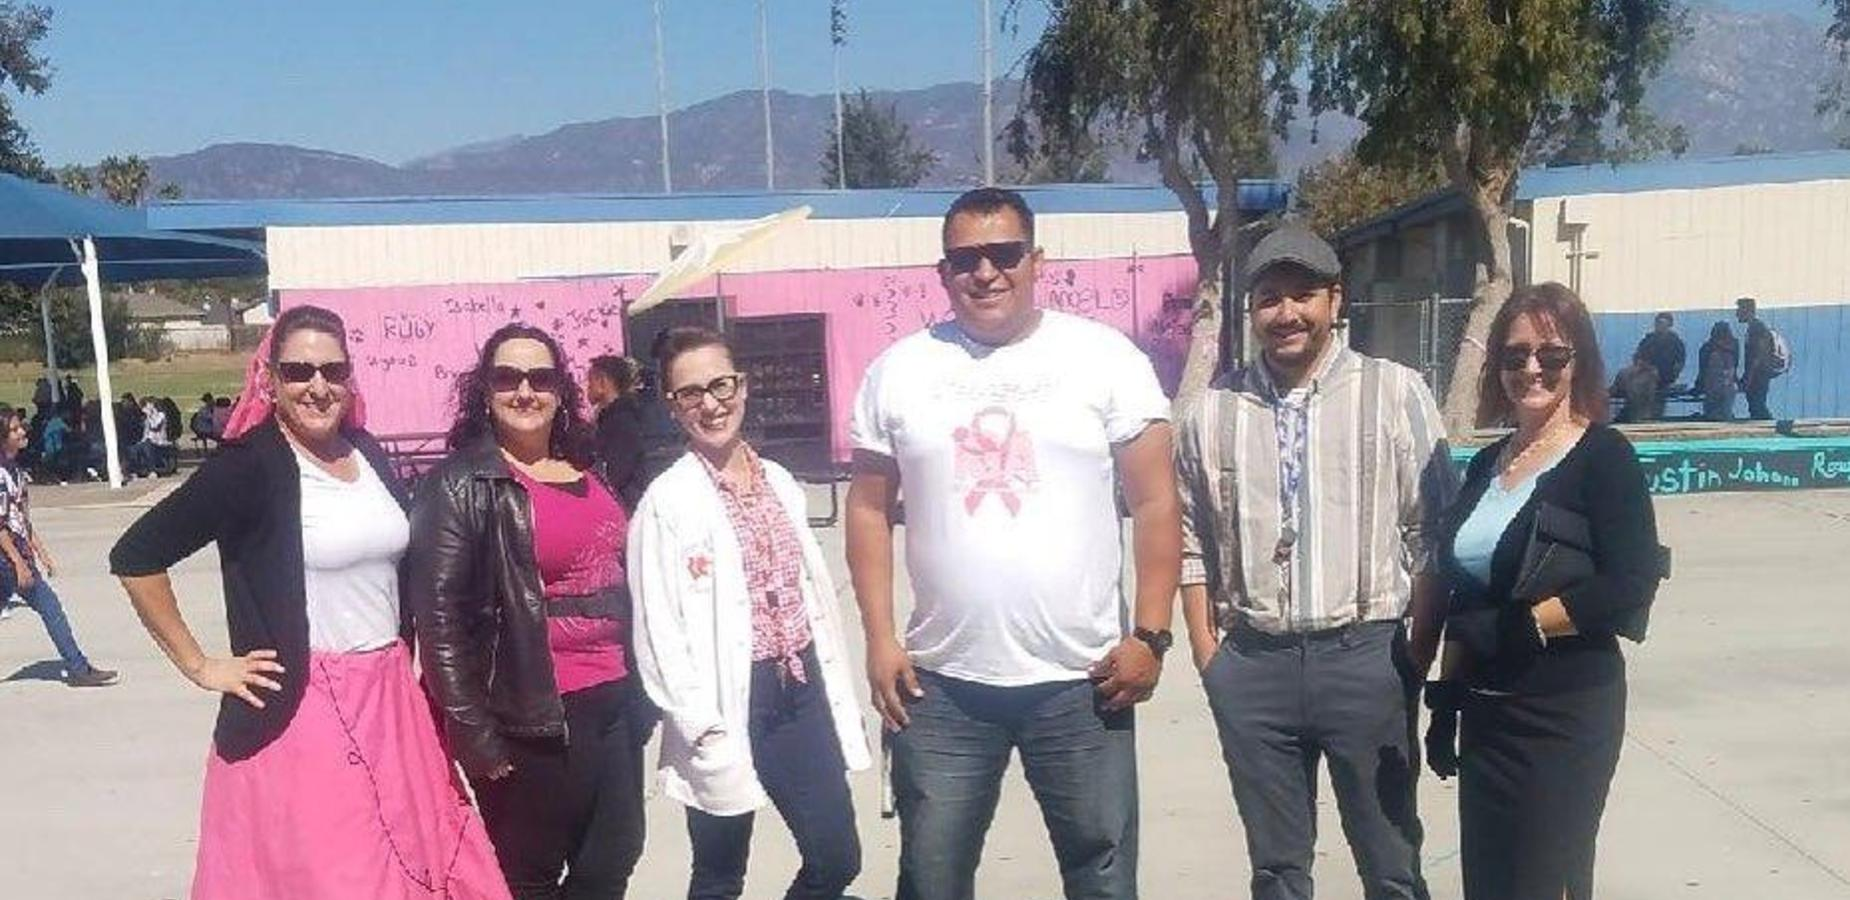 Palomares is all about Breast Cancer Awareness Week!